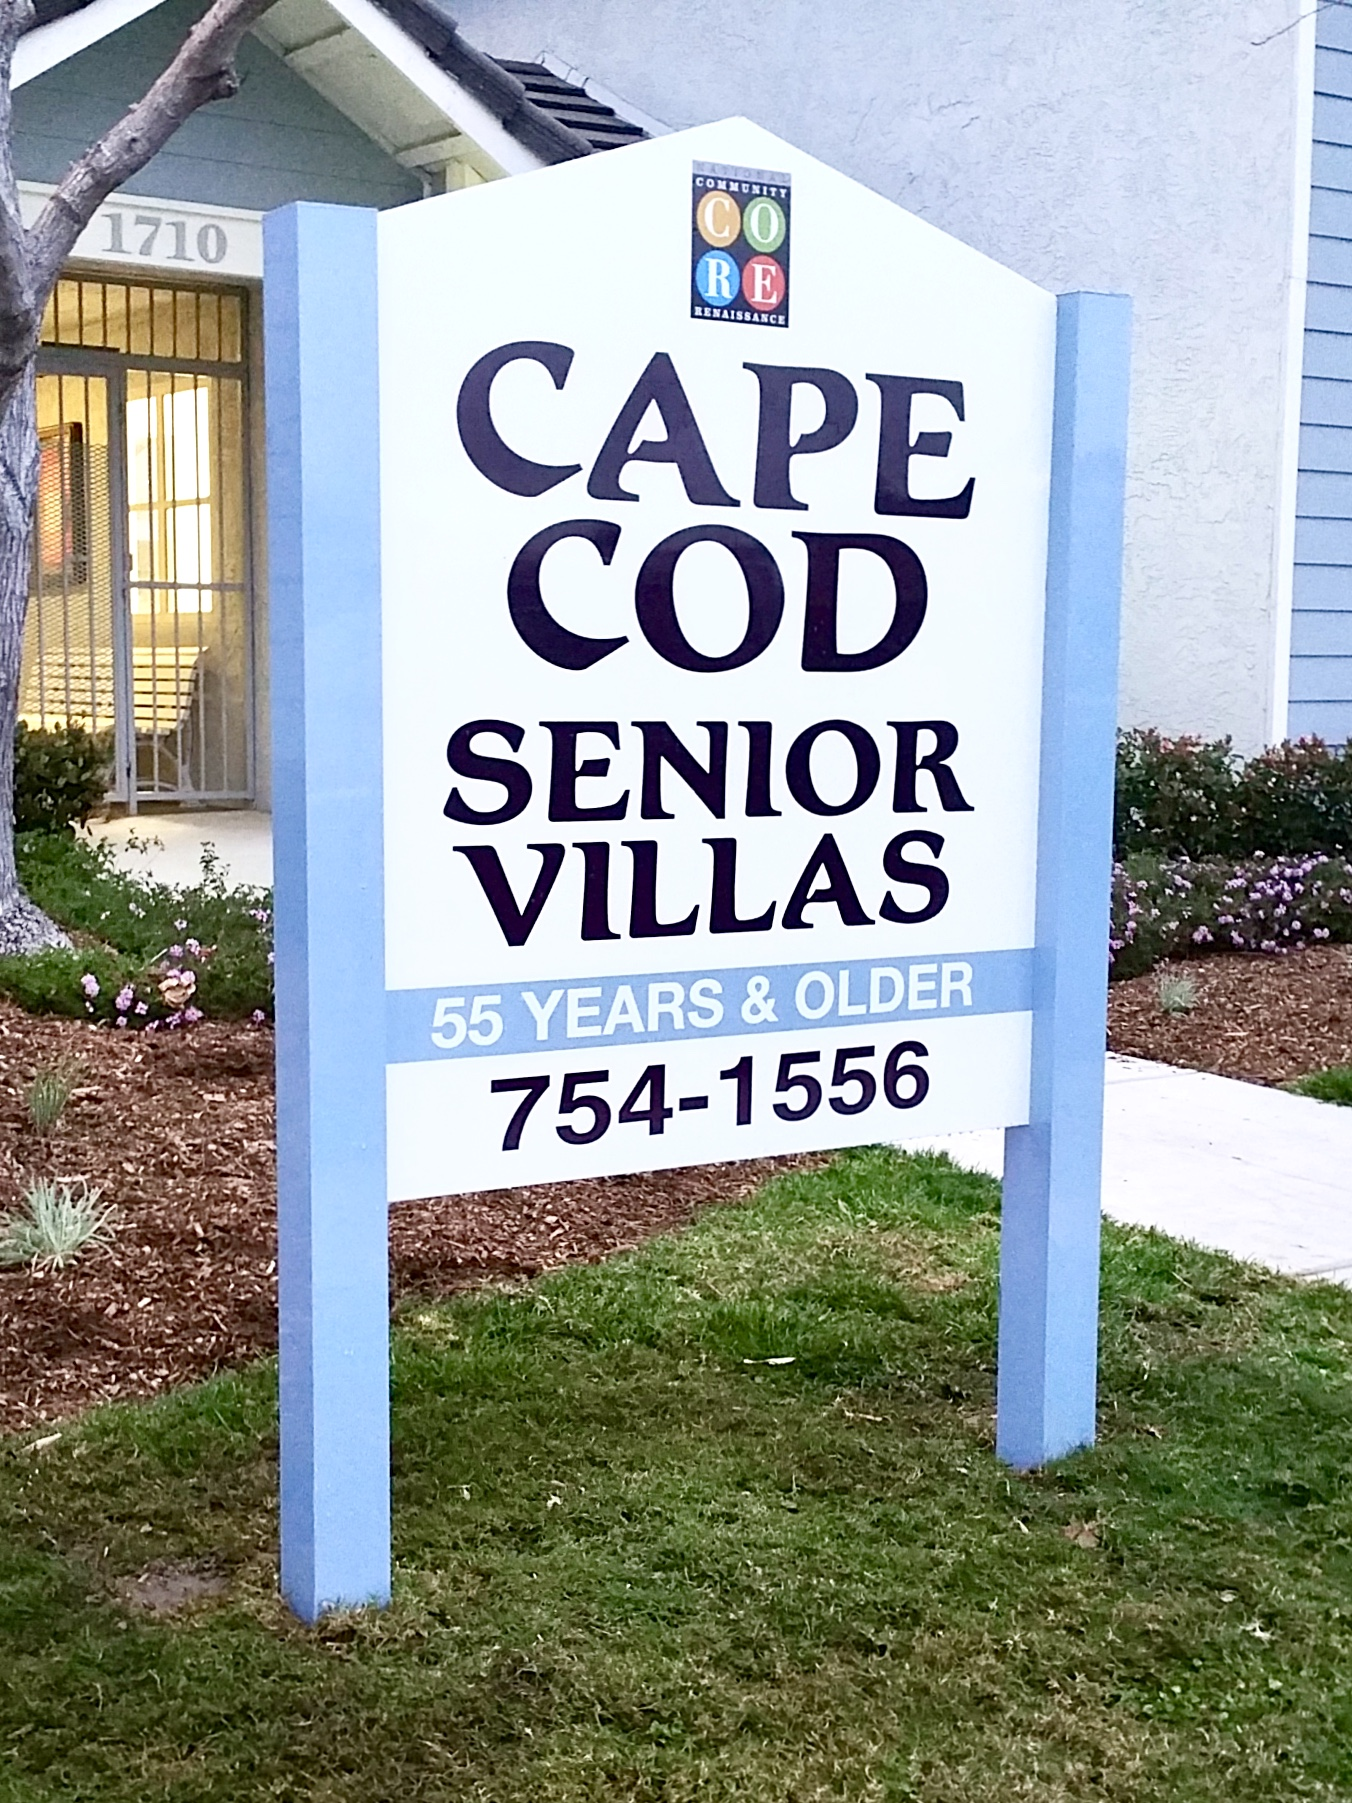 Cape Cod Senior Villas was a new monument sign in Oceanside, near San Diego. It's made of two aluminum posts and an aluminum panel mounted between.